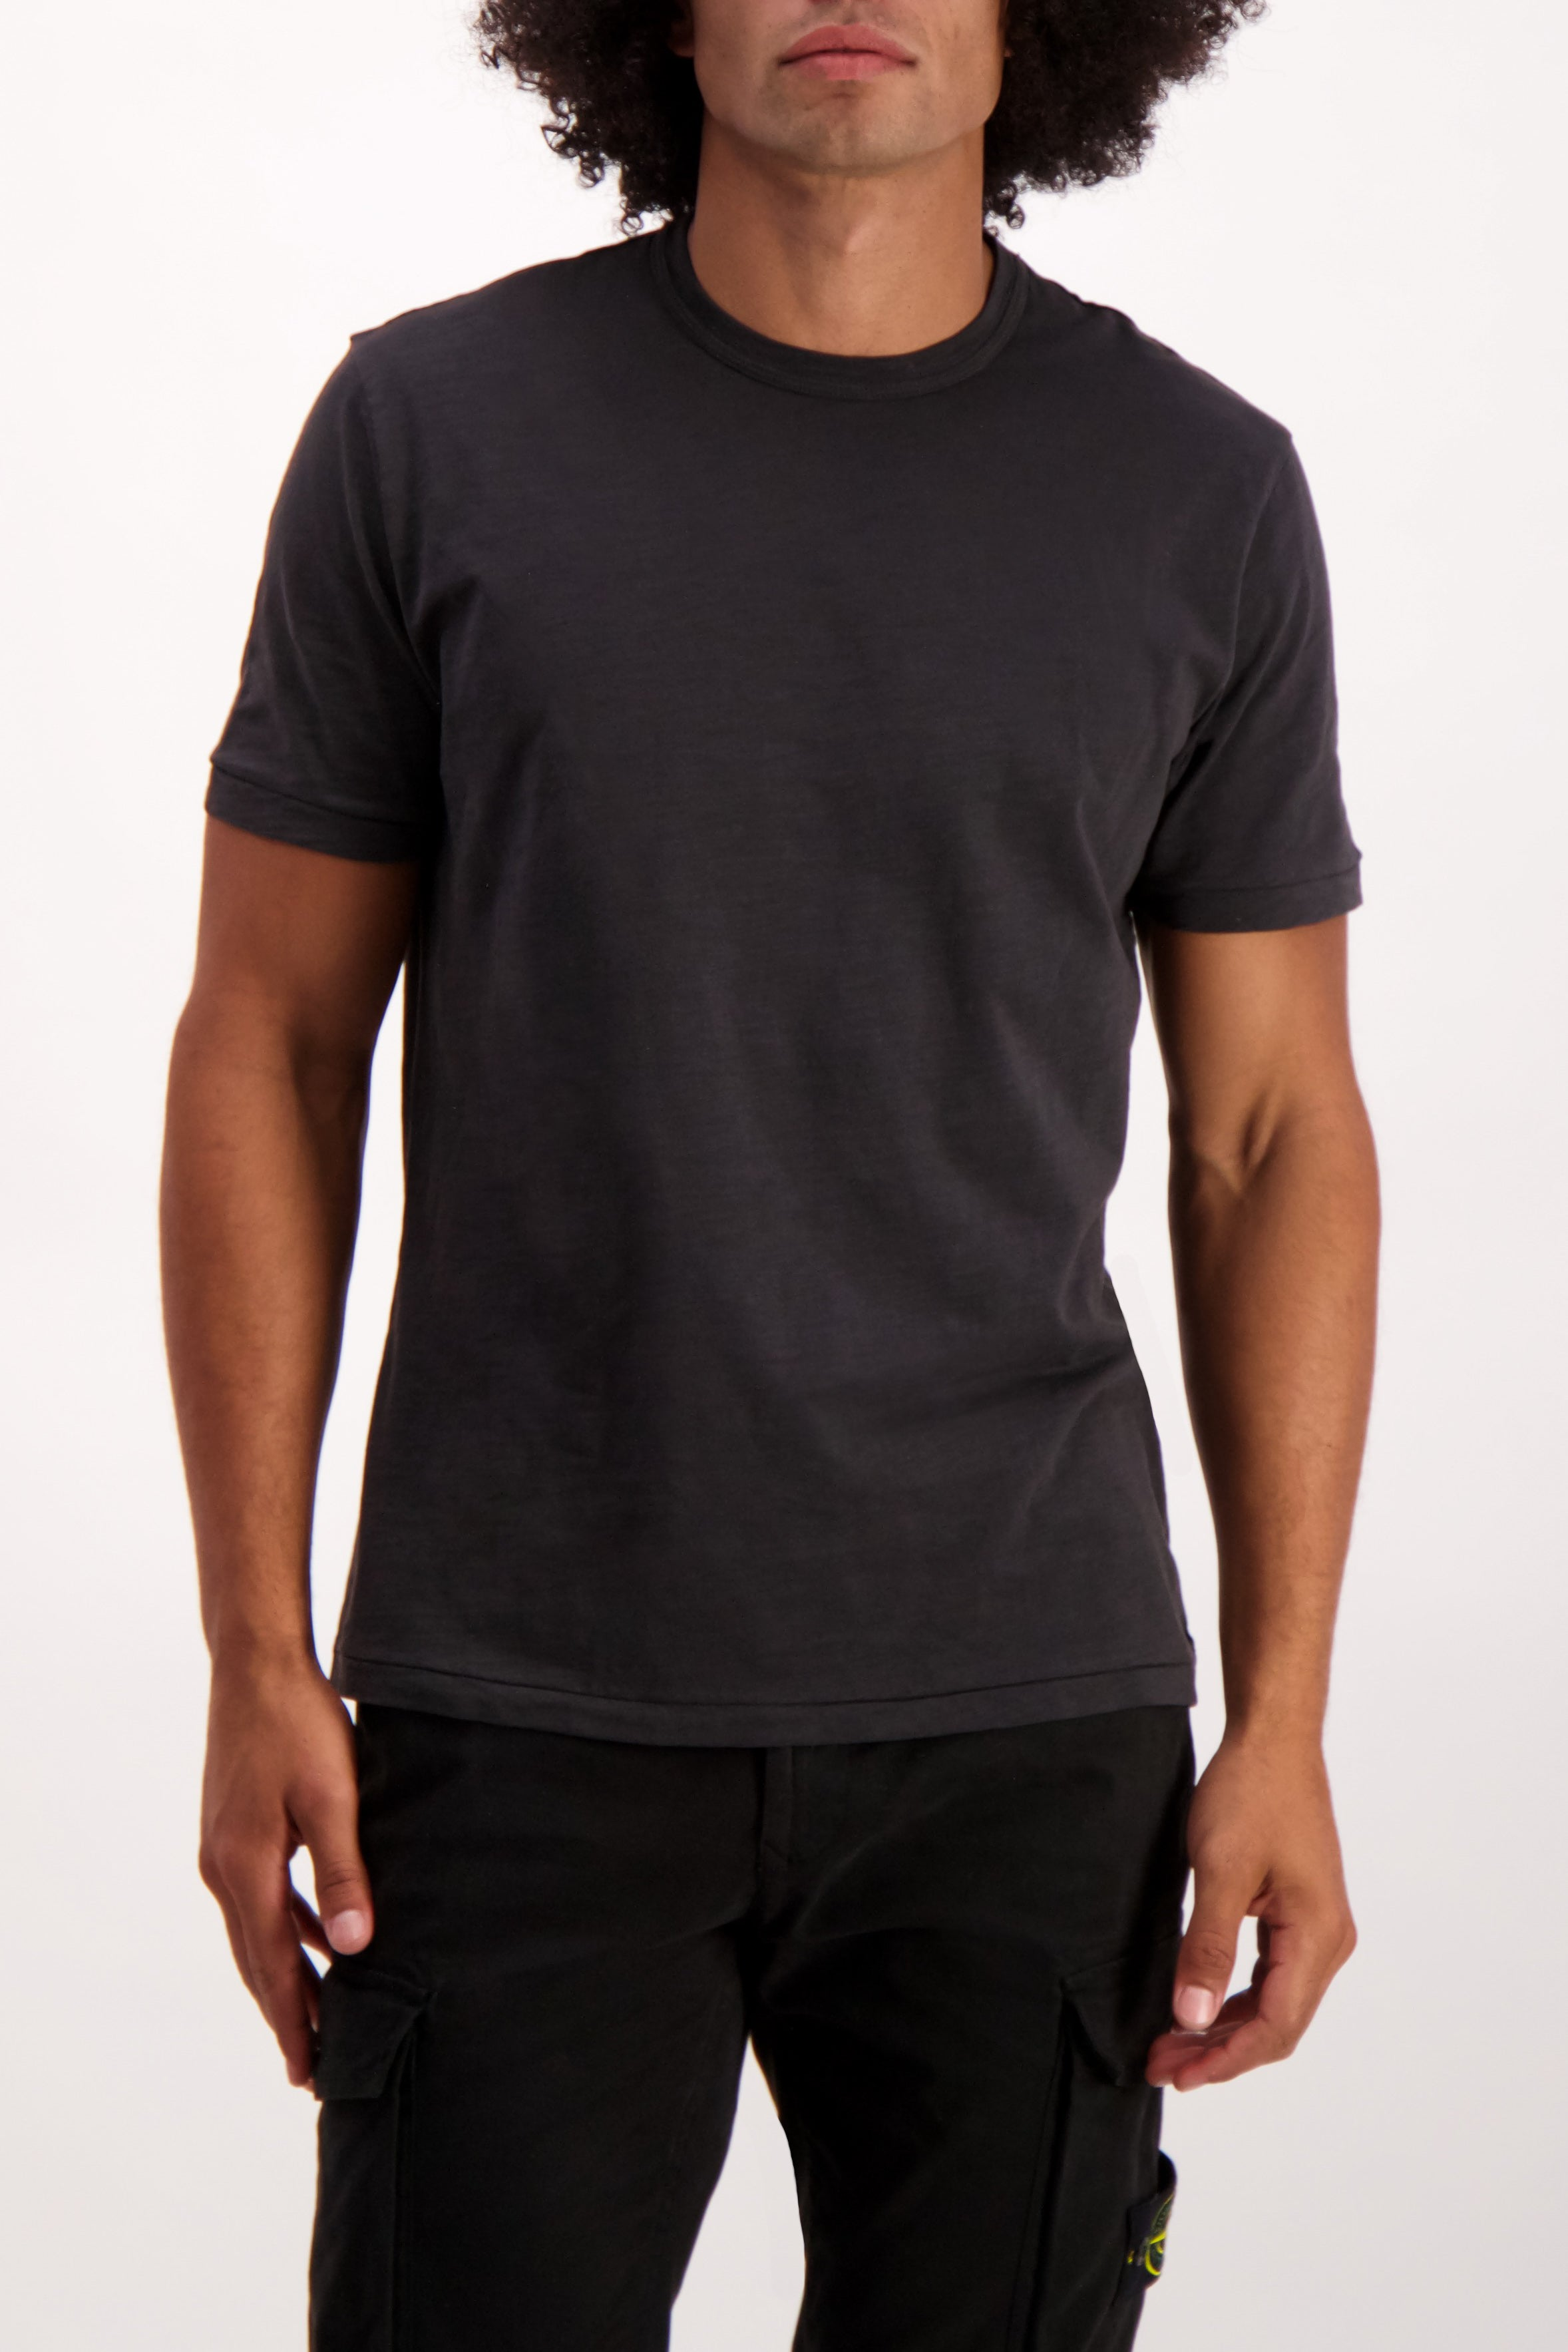 Front Crop Image Of Model Wearing Alex Mill Men's Standard Slub Cotton Tee Black